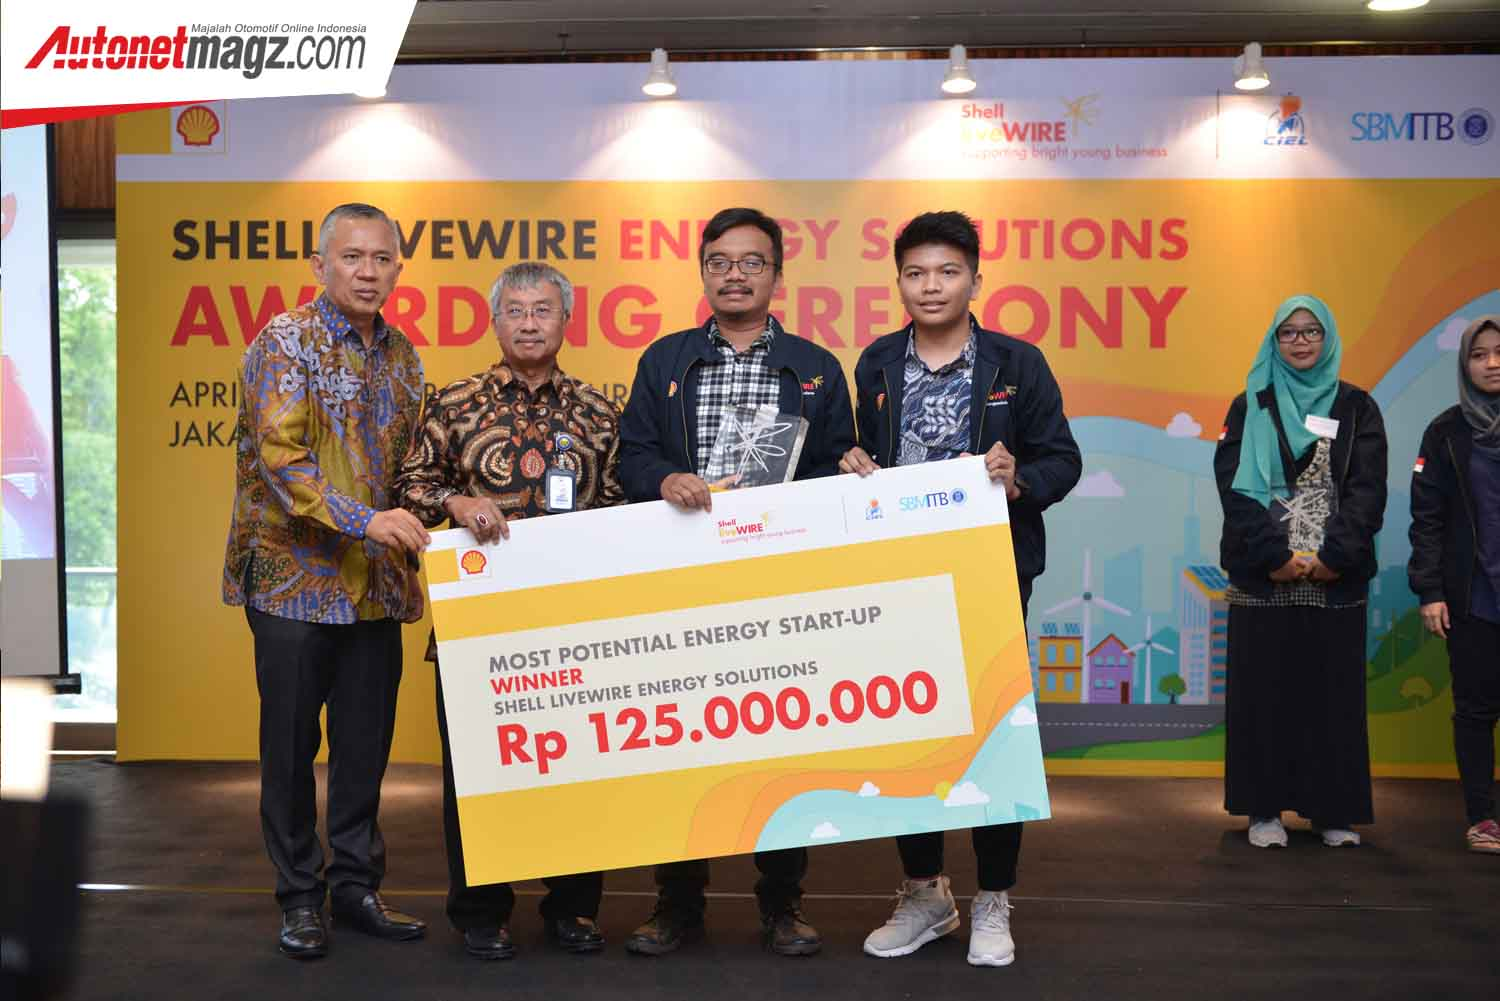 Berita, Shell LiveWIRE Energy Solution: Shell LiveWIRE Energy Solution Gali Wirausaha Muda Yang Kreatif